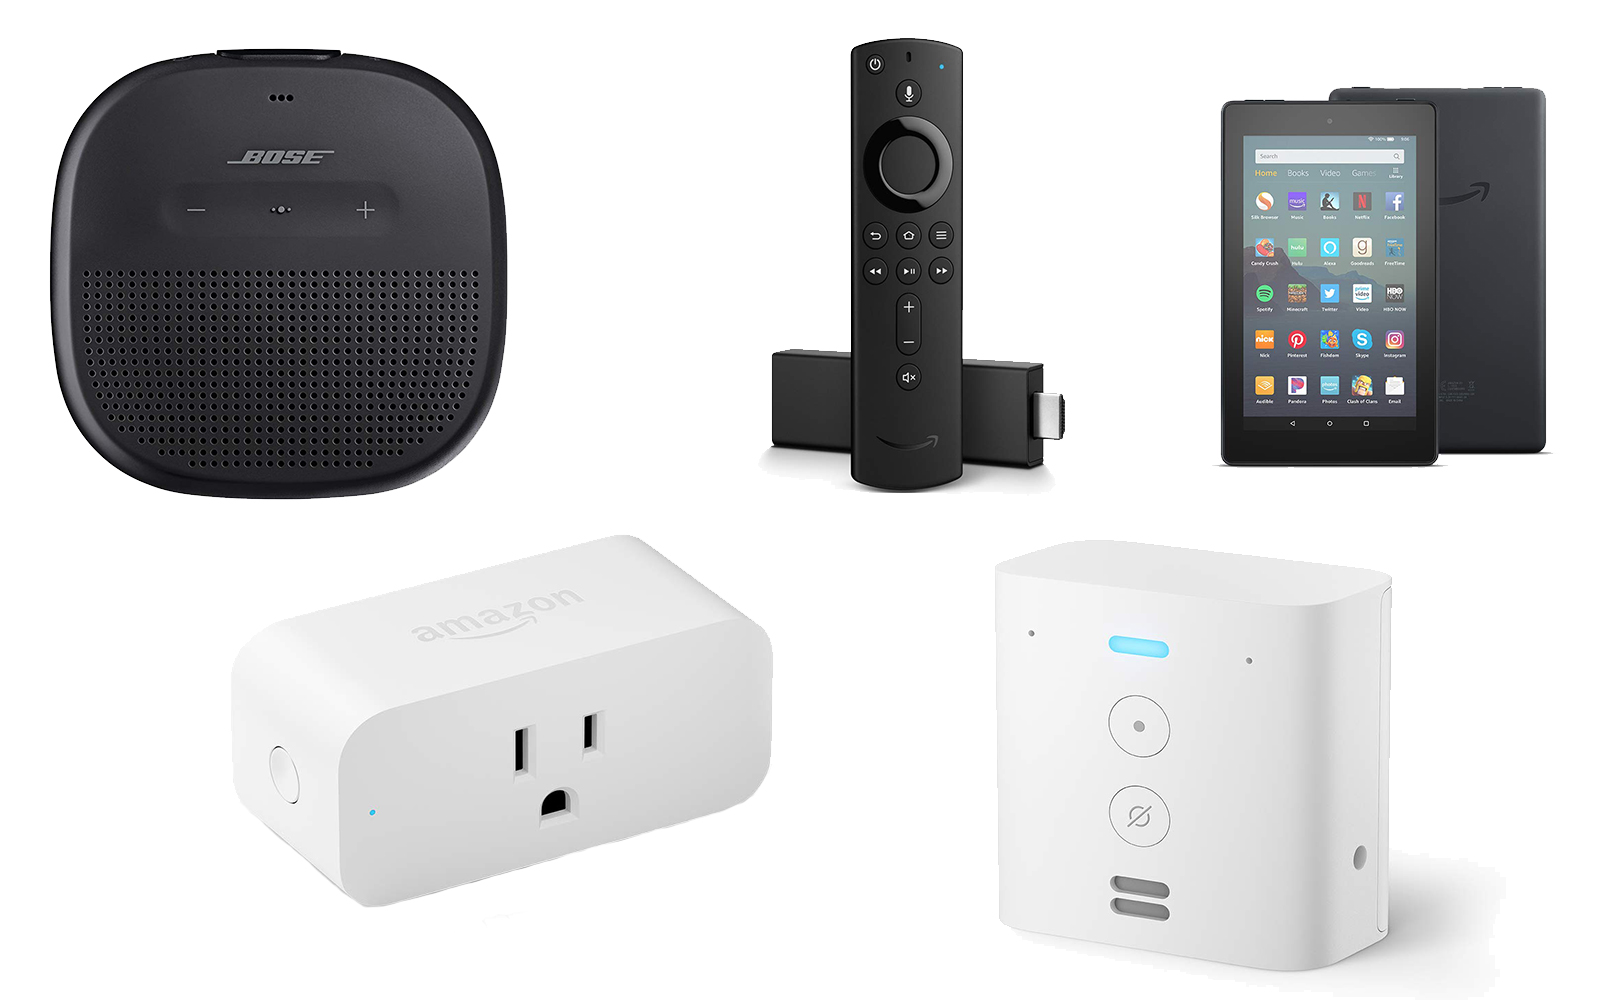 Amazon unveiled its best electronic and tech gifts of 2019 — all under $100